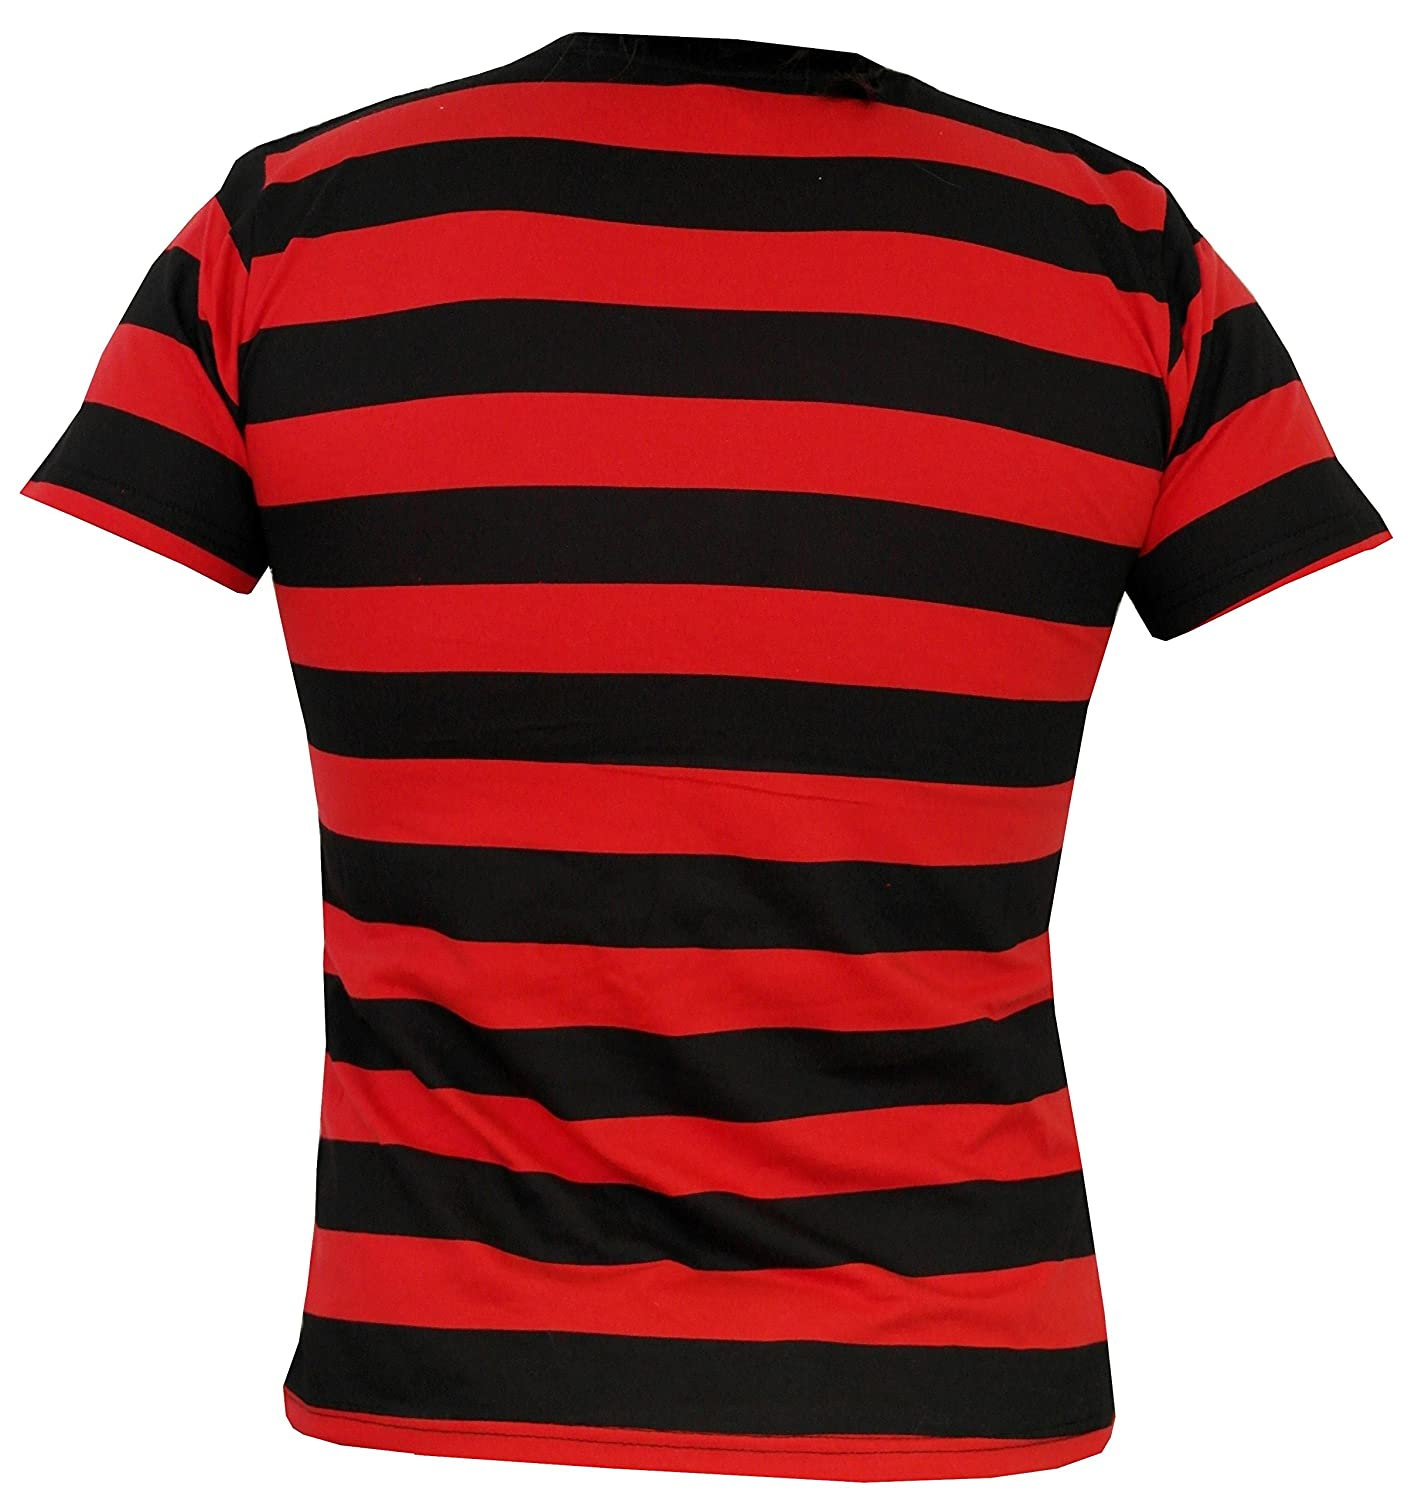 Black t shirt amazon - Rock Star Academy Black And Red Striped T Shirt